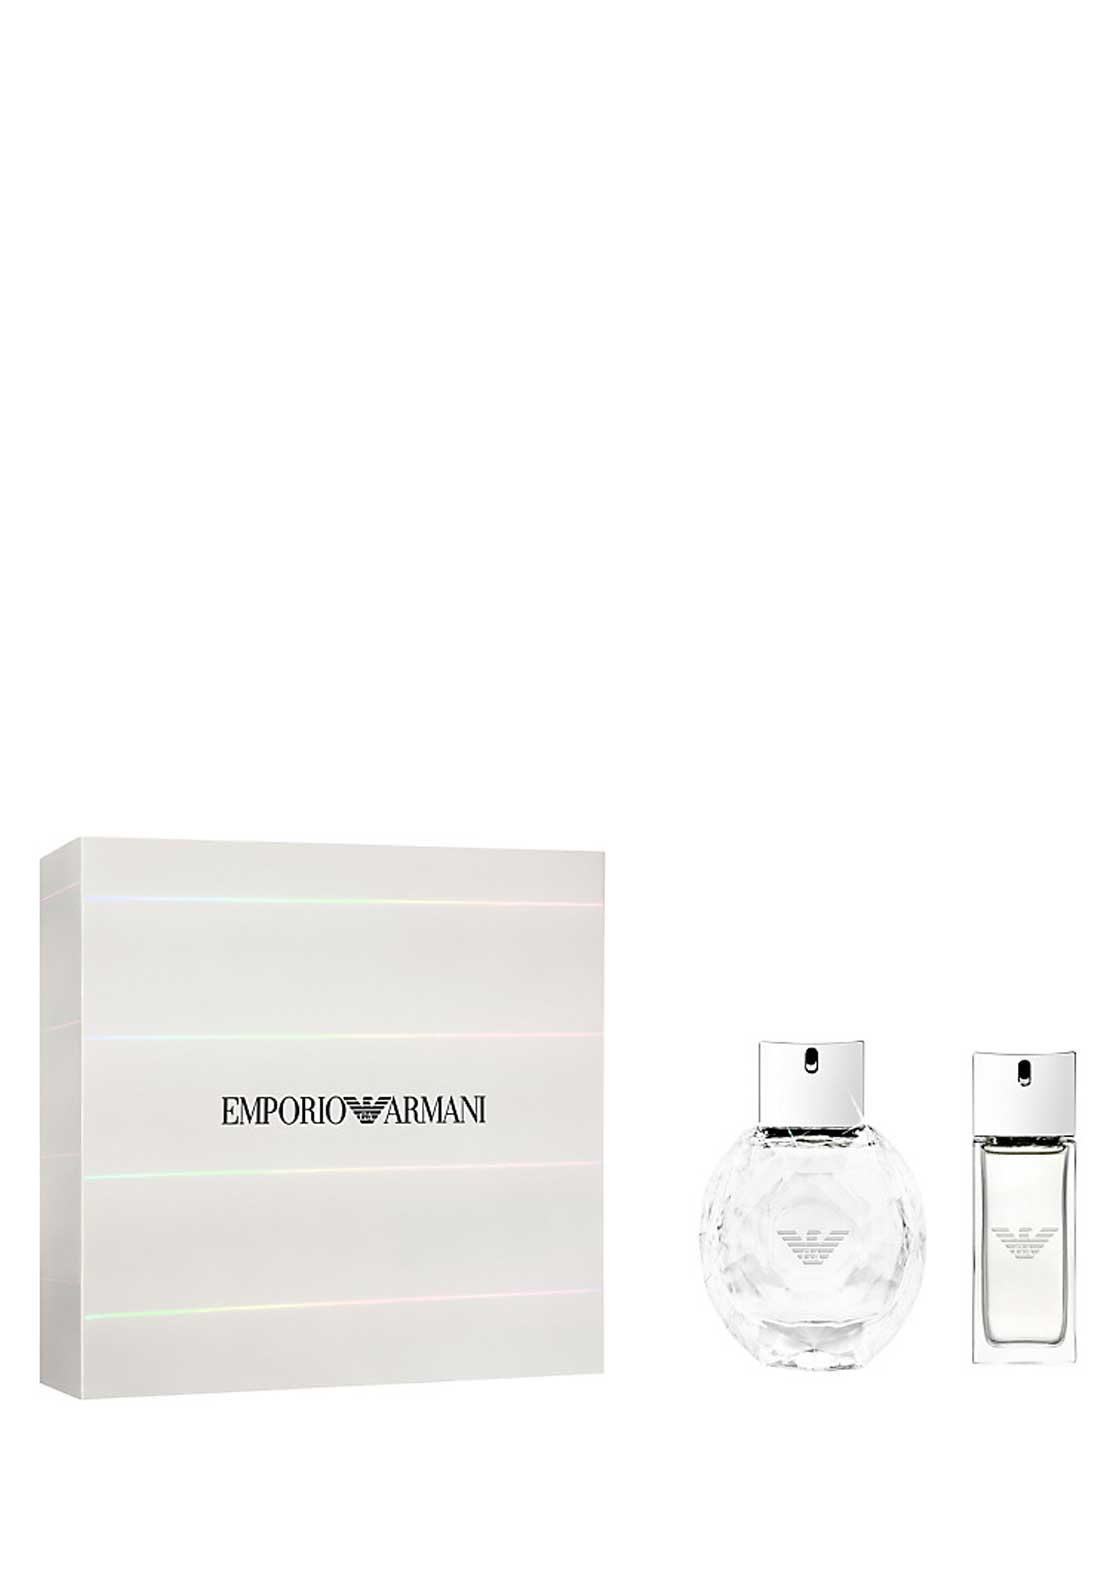 Emporio Armani Diamonds for Her Gift Set, 50ml